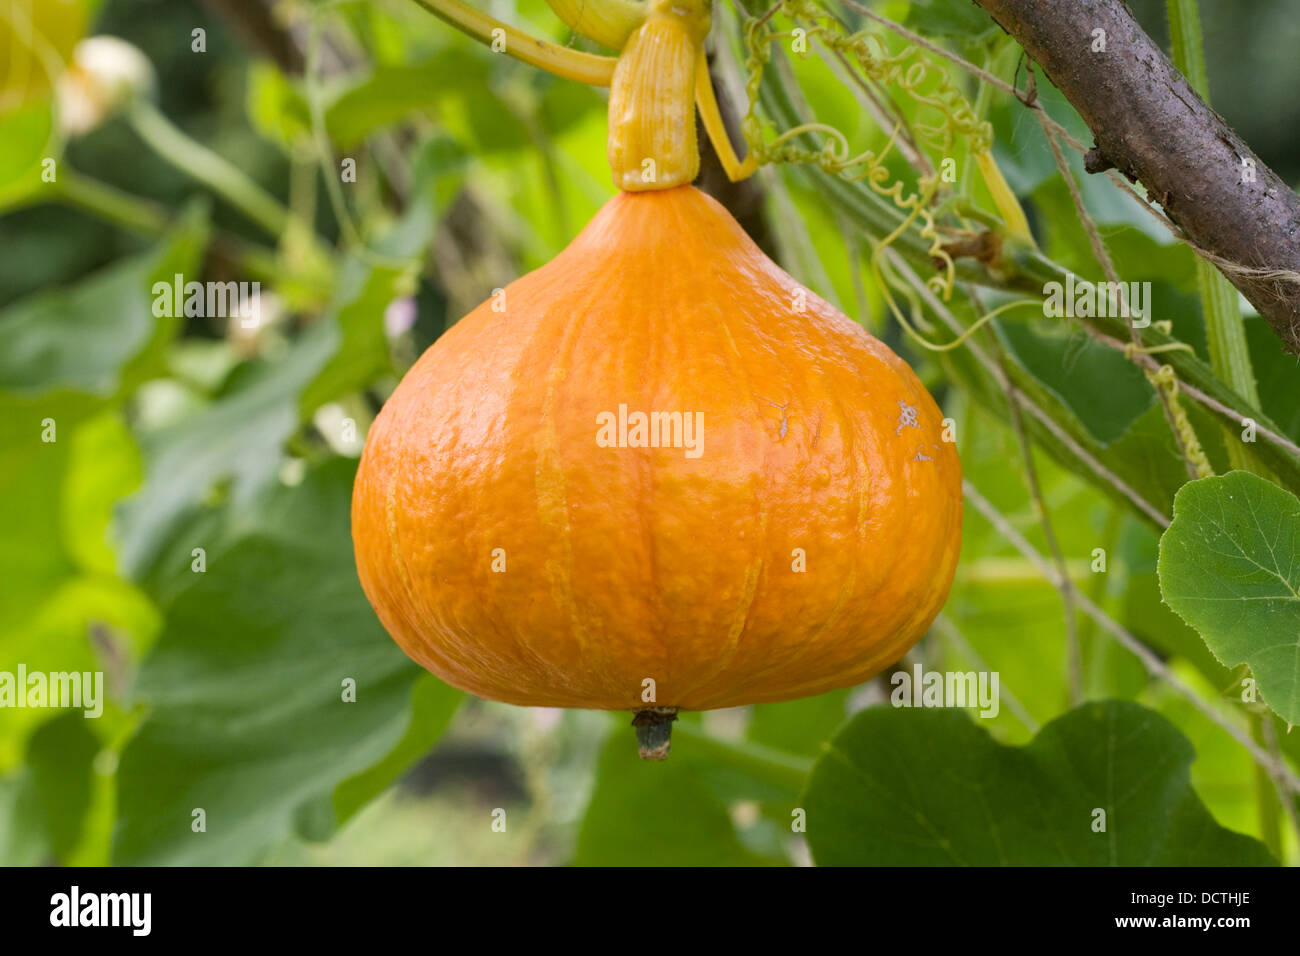 Squash growing on a frame for support. - Stock Image